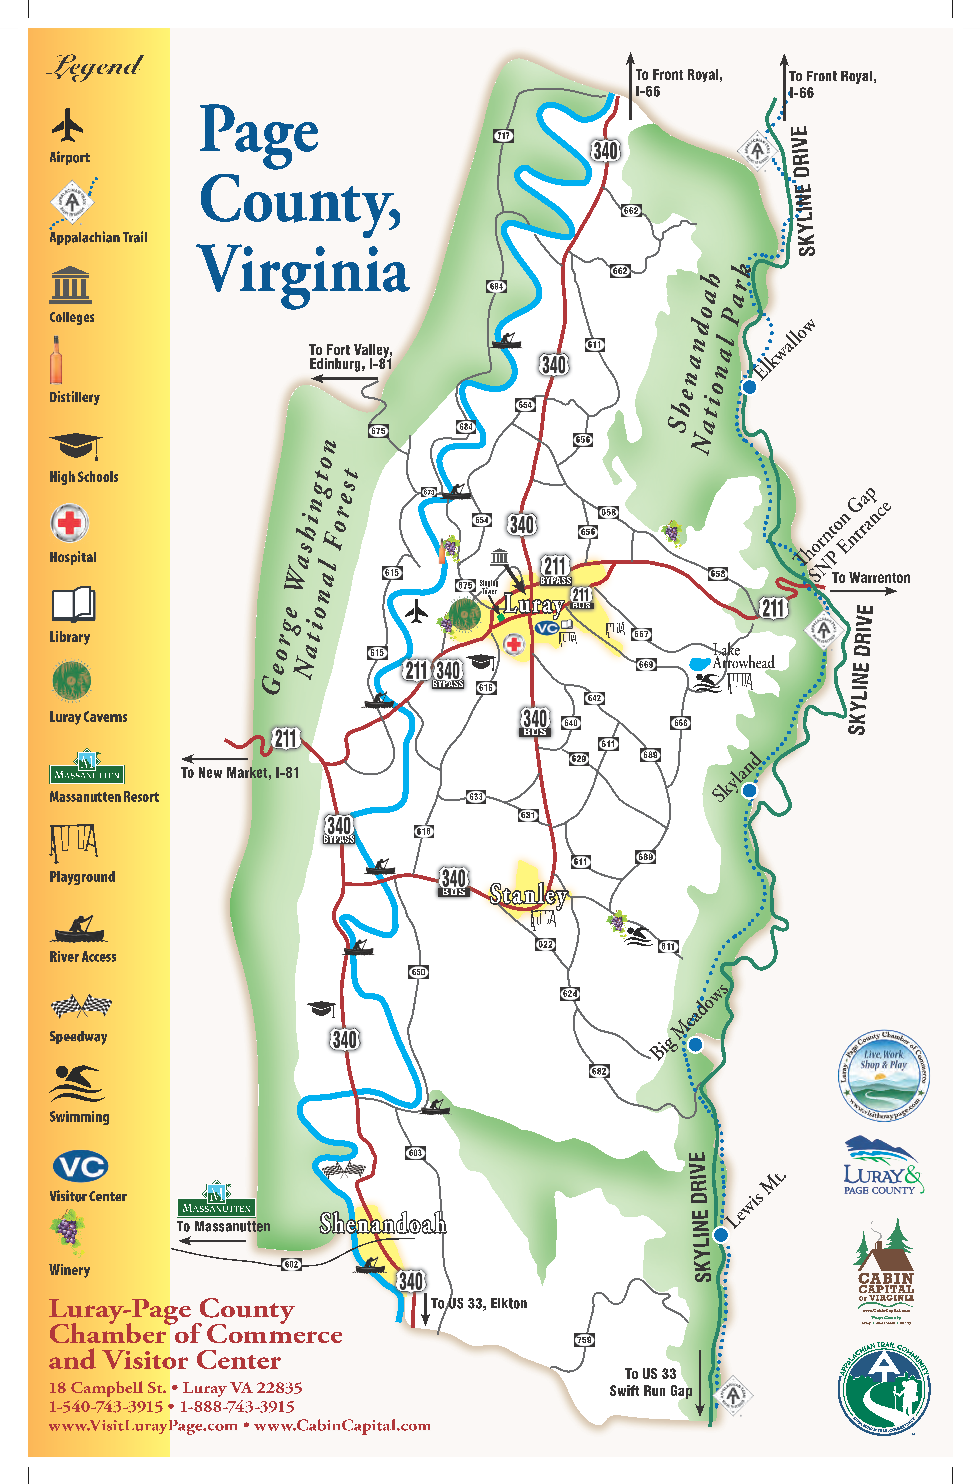 Maps of Luray and Page County for Your Exploring | Luray ... Map It on driving directions, map of africa, map of north carolina, map of new york, map of pennsylvania, map of georgia, map of the world, map of china, map of ohio, map of the united states, map of tennessee, map of asia, map of us, map of france, map of texas, map of florida, map of south carolina, map of michigan, map of california,